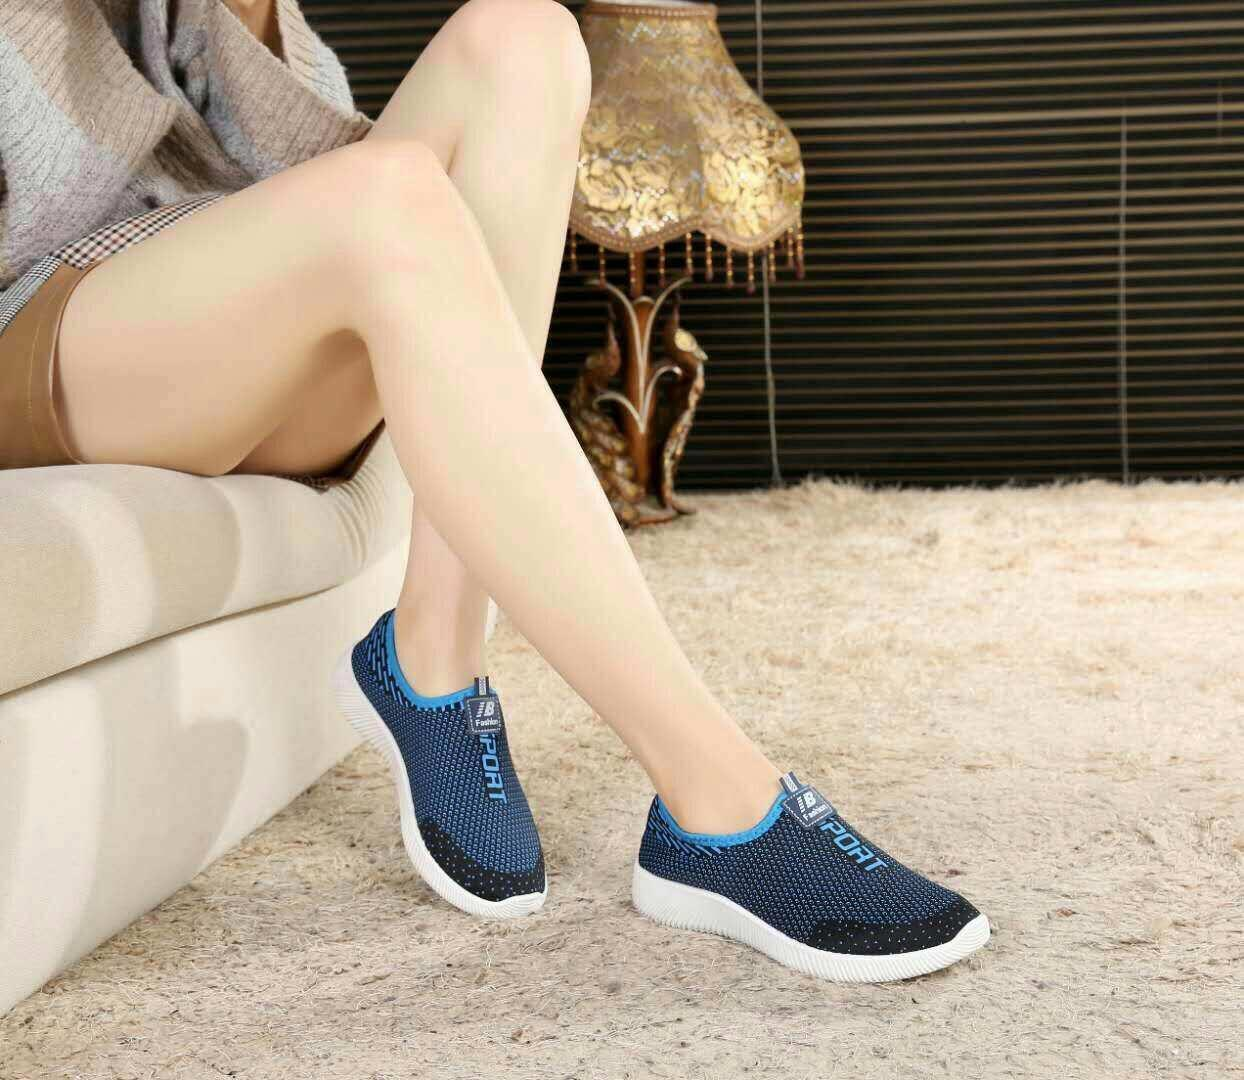 Cod Comfortable Women Running Shoes Slip-On Women Fashion Sneakers -Intl By 5stars.ph.